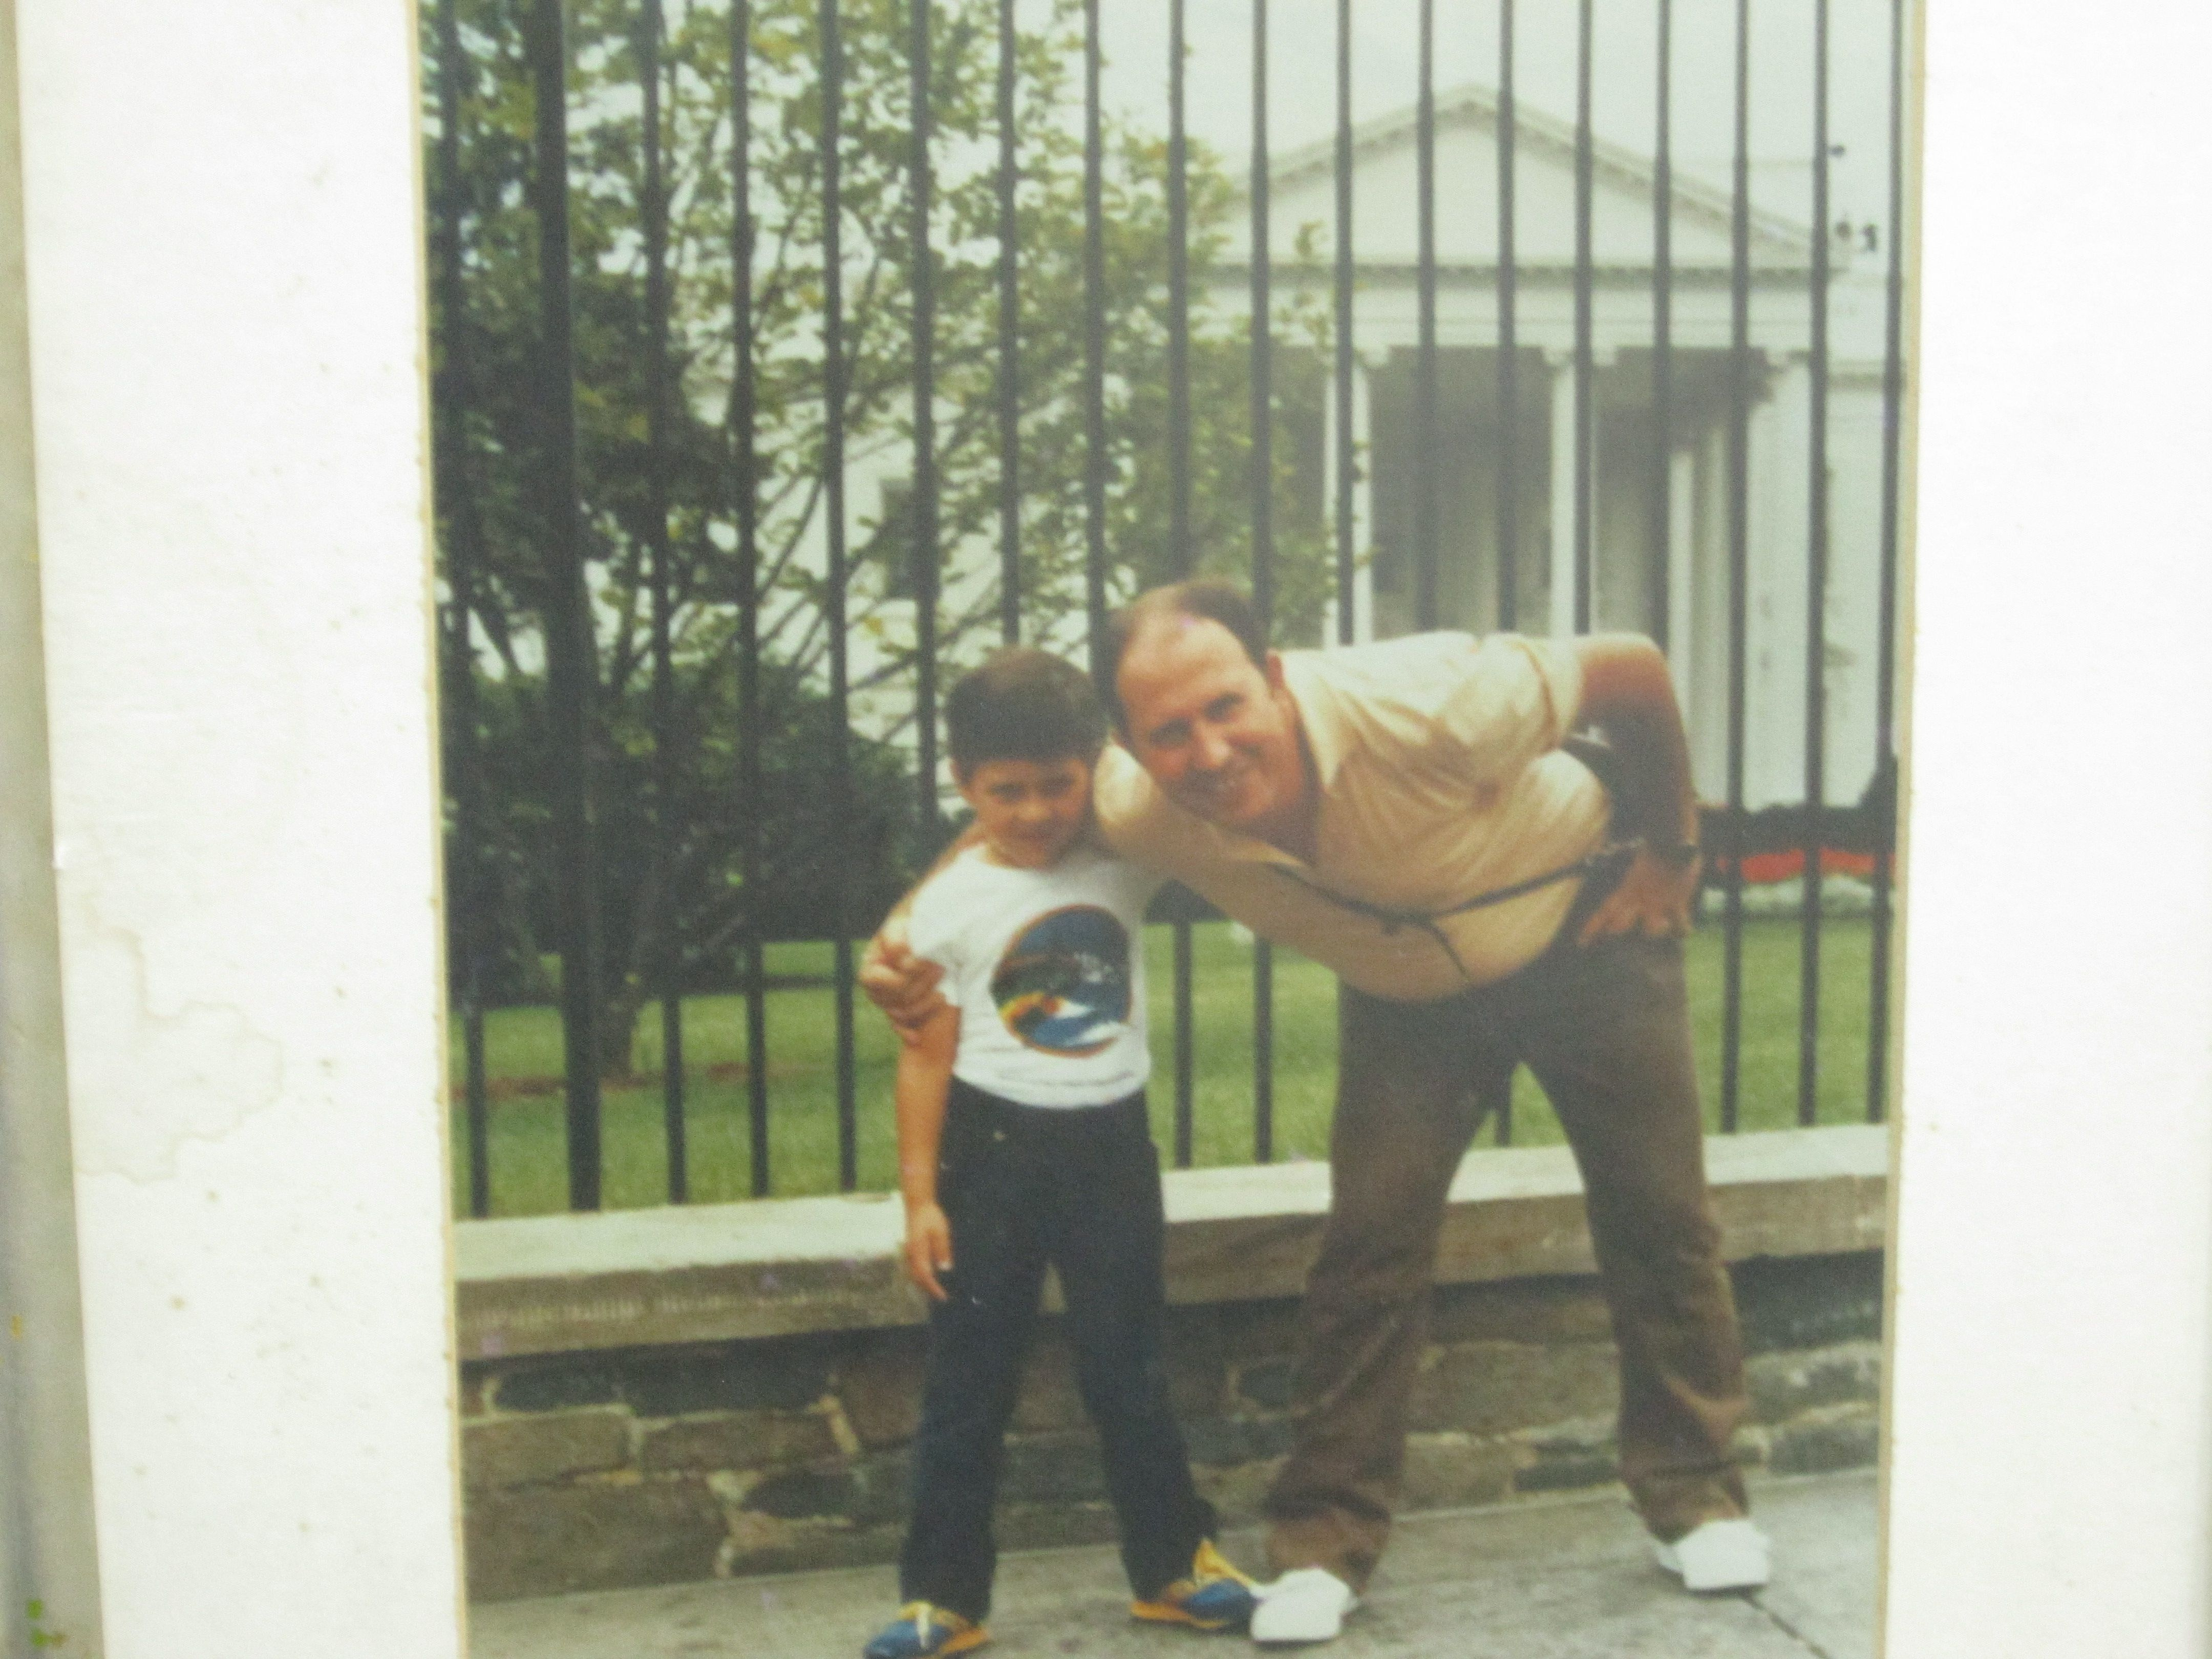 Juan Pablo Escobar in front of the white house